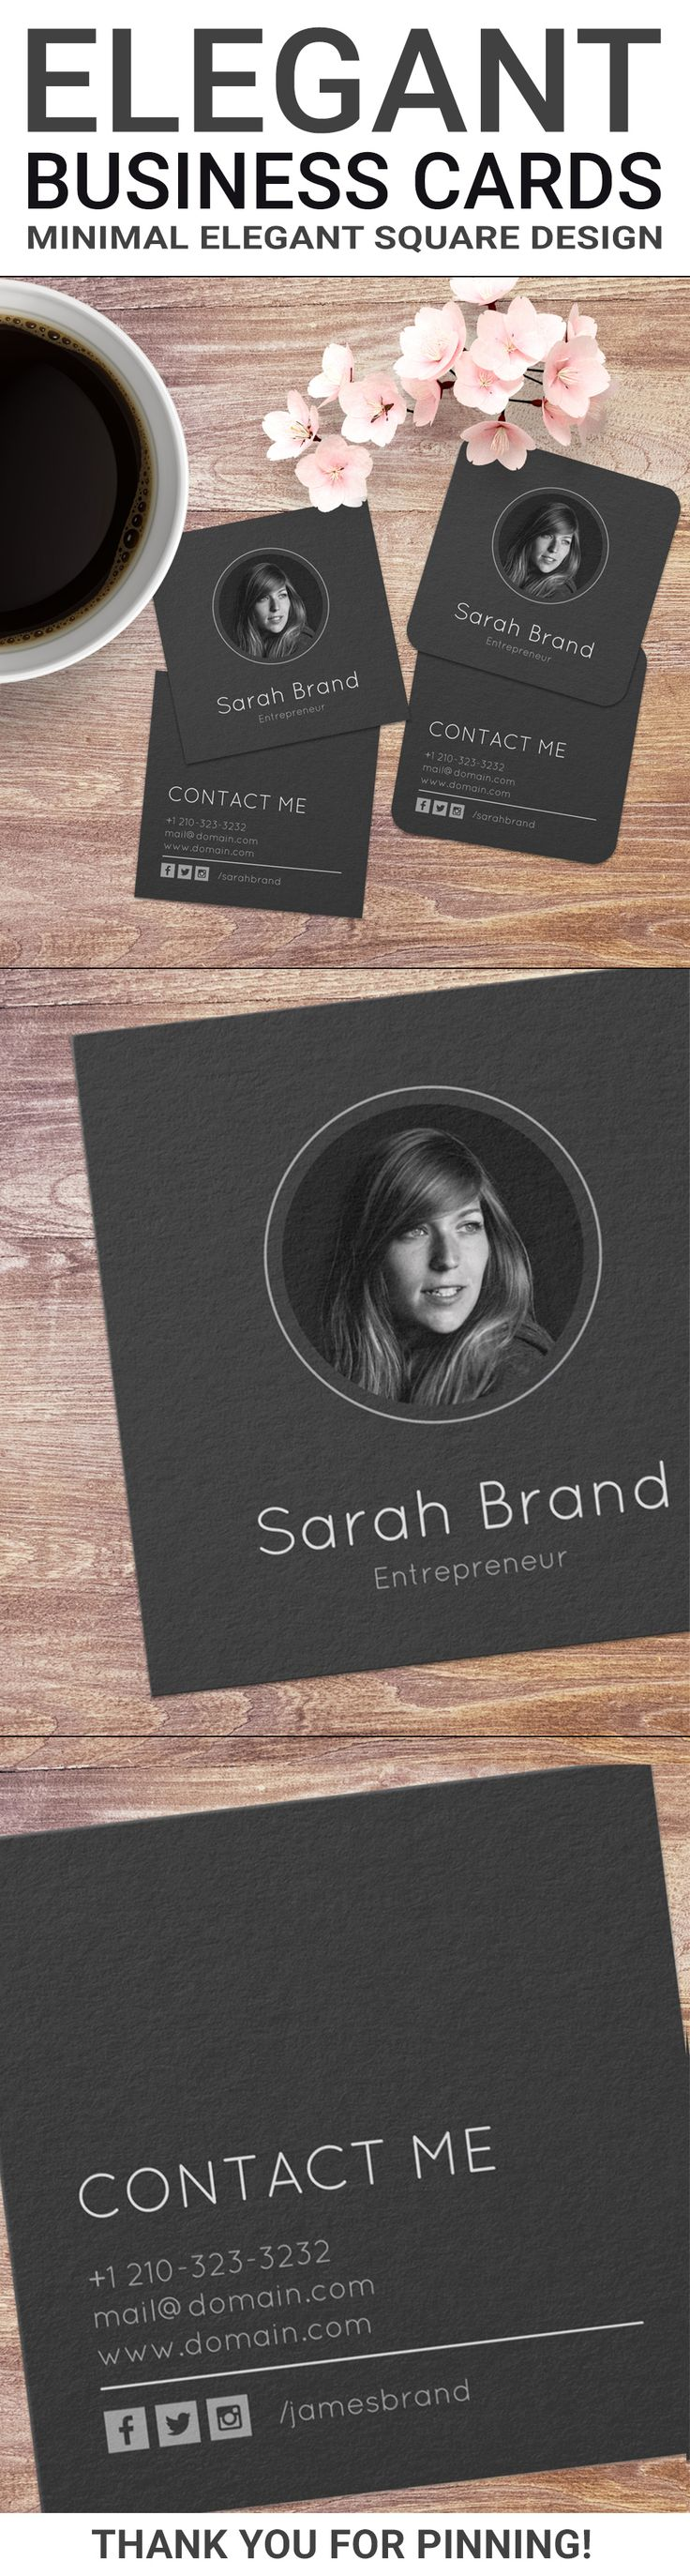 """Elegant minimalist dark business cards with your personal photo. The square 2.5"""" x 2.5"""" shape of card ensures the focus is on your photo, name and contact information. This minimalist design is ideal for one person businesses, entrepreneurs, developers or real estate agents to only name a few. Elegant square business cards by J32 Design"""